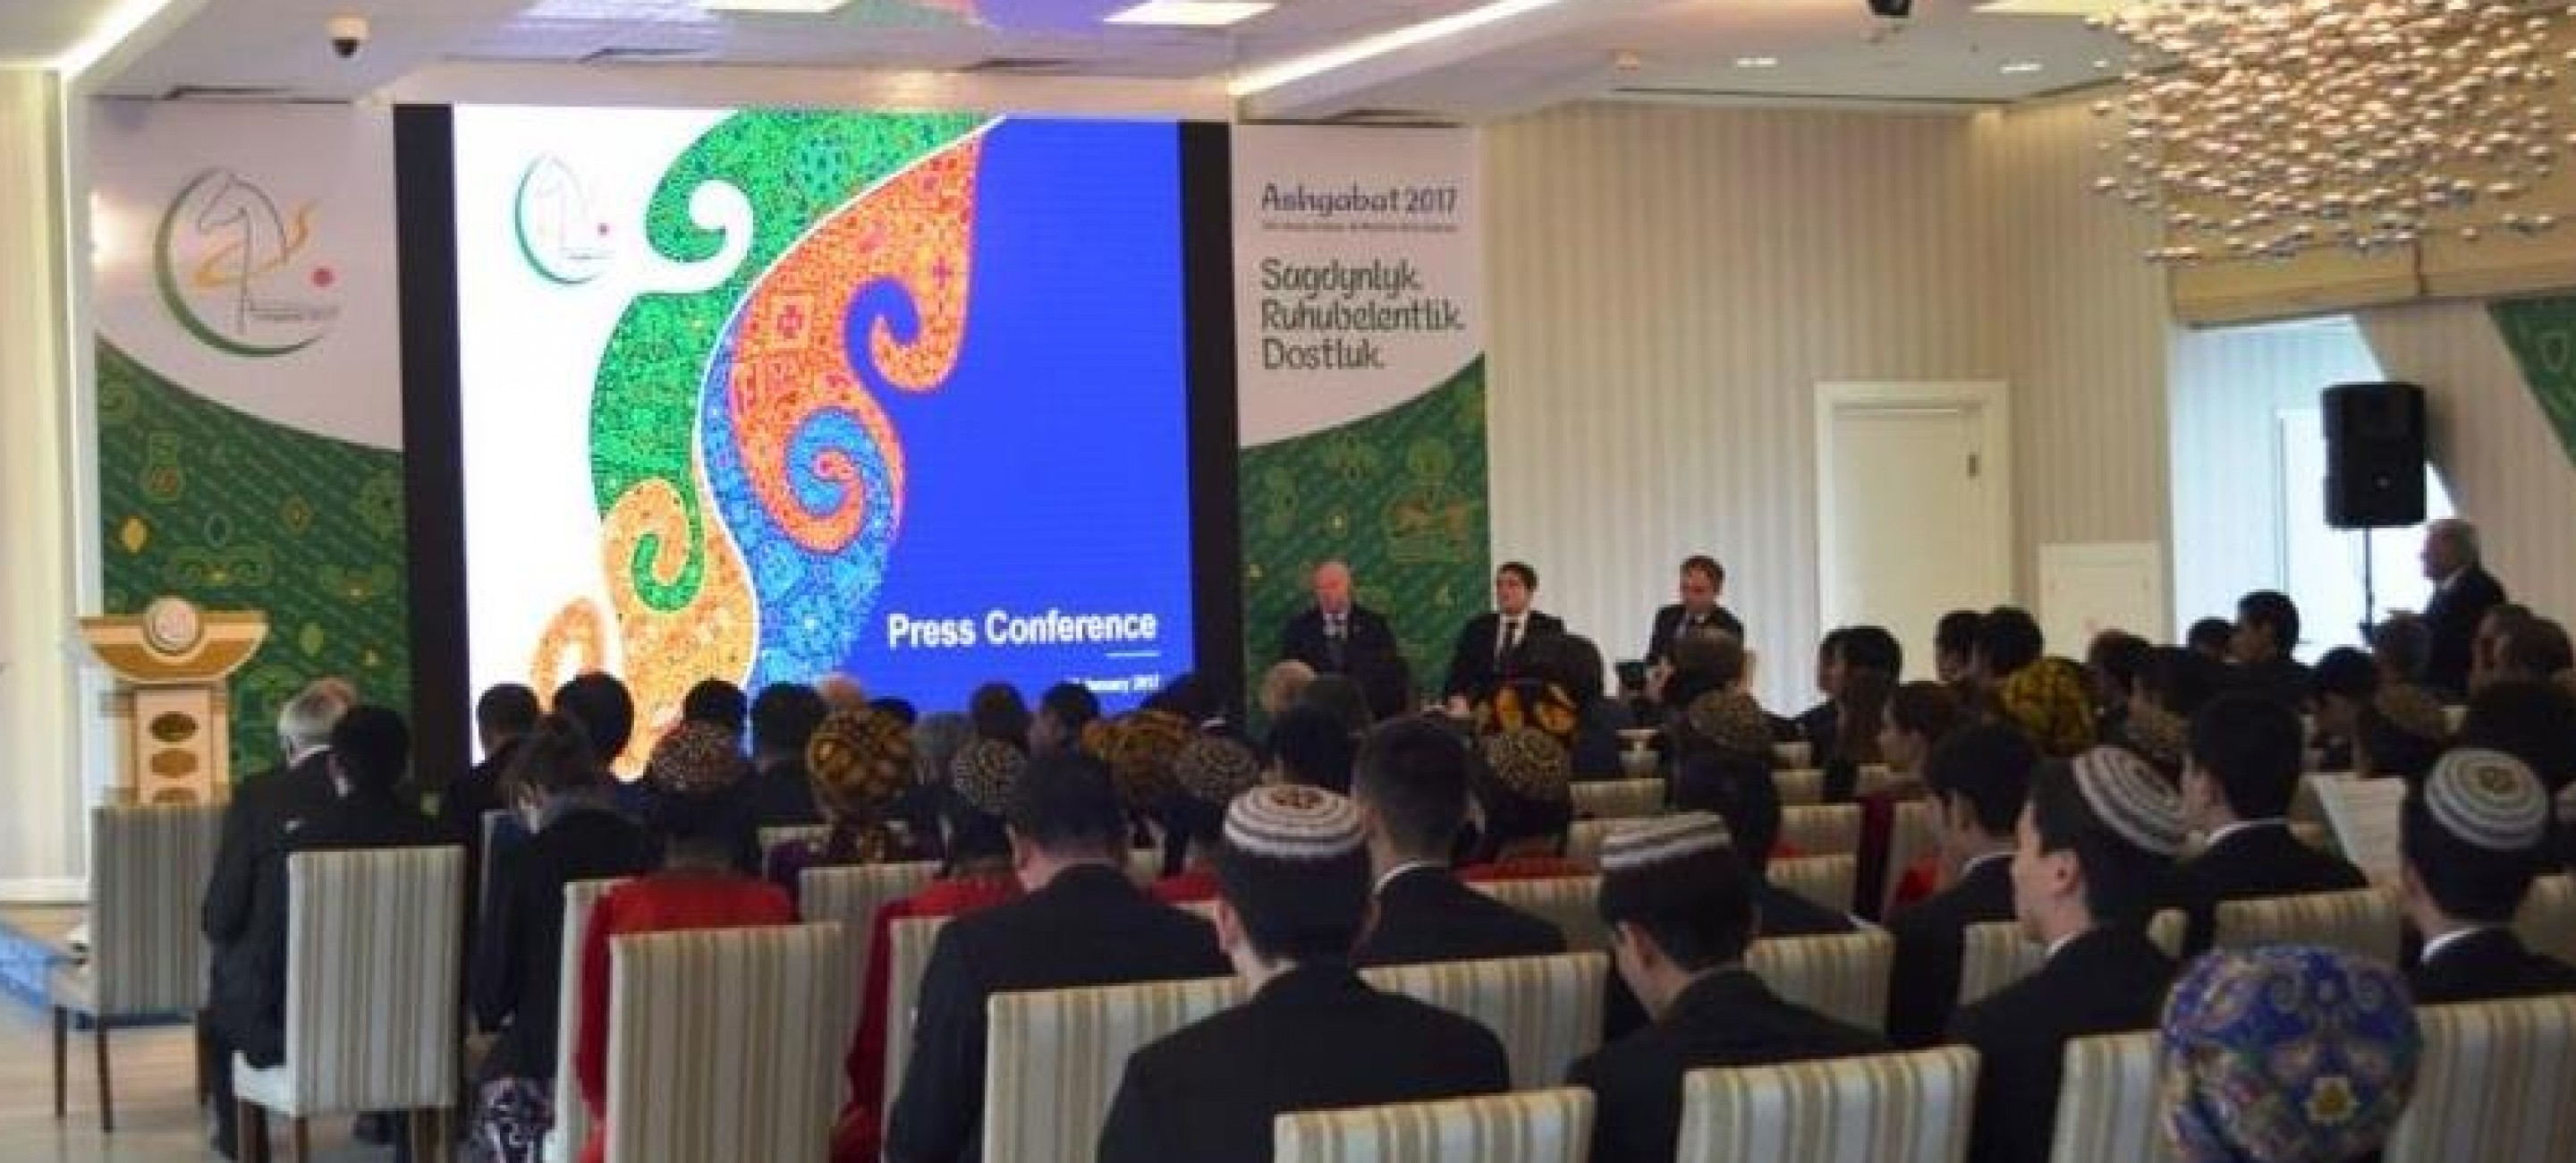 A PRESS CONFERENCE DEDICATED TO THE V ASIAN GAMES INDOORS AND MARTIAL ARTS HELD IN THE OLYMPIC VILLAGE IN ASHGABAT